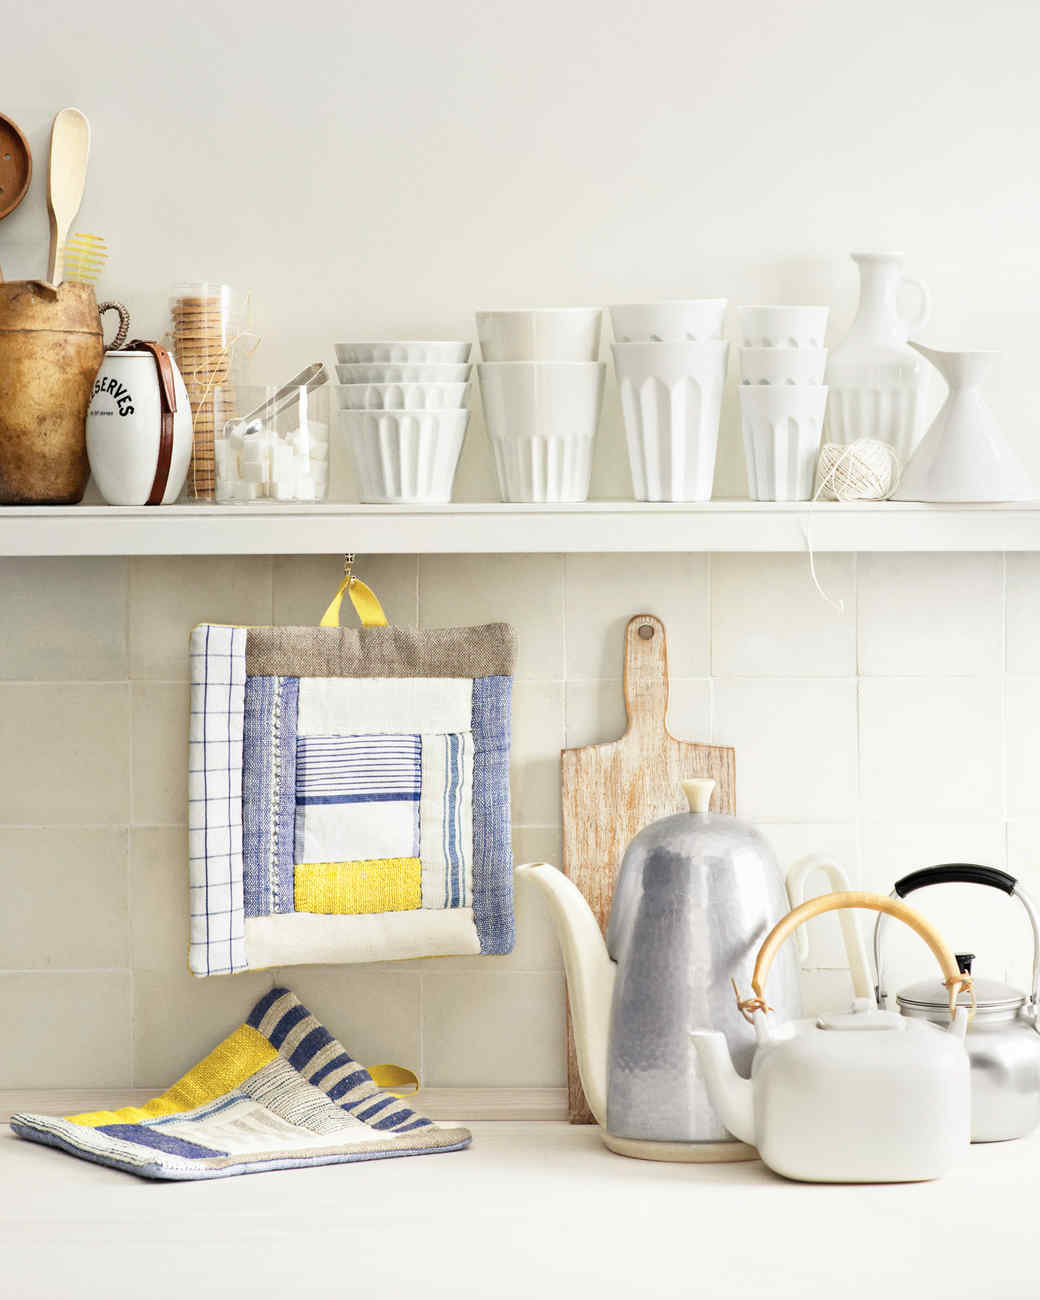 martha stewart kitchen towels towel hanger quilted potholders with inside out quilting technique